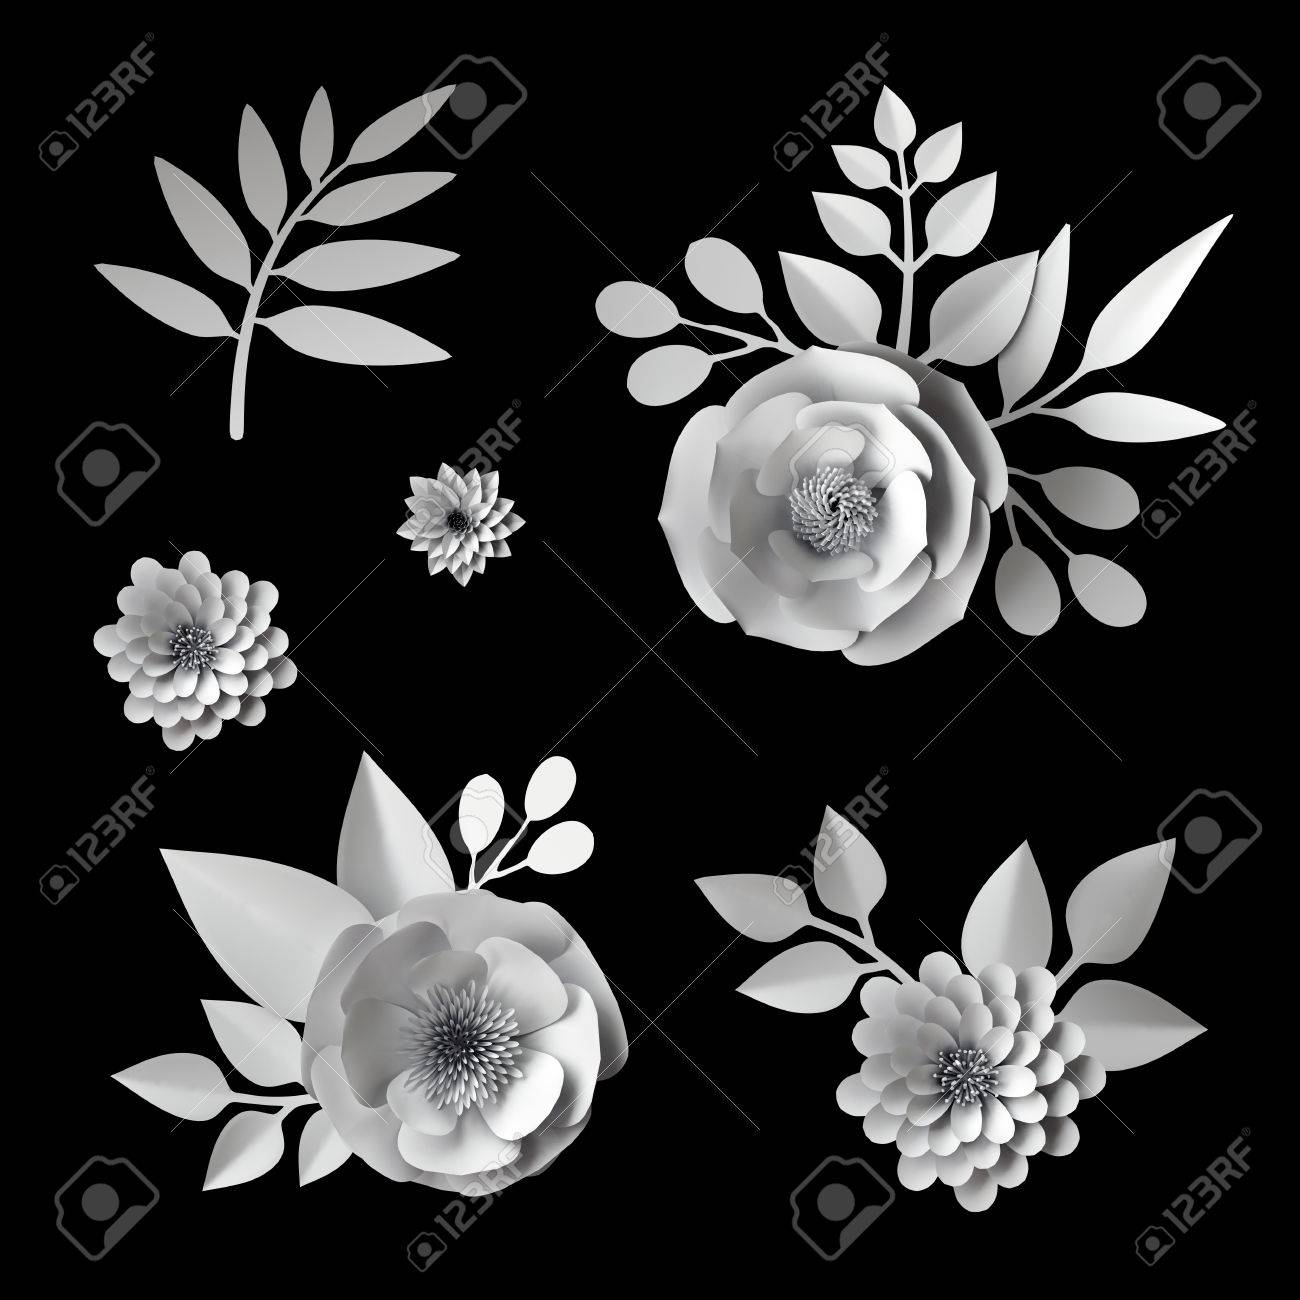 3d white paper flowers design elements collection clip art set isolated on black